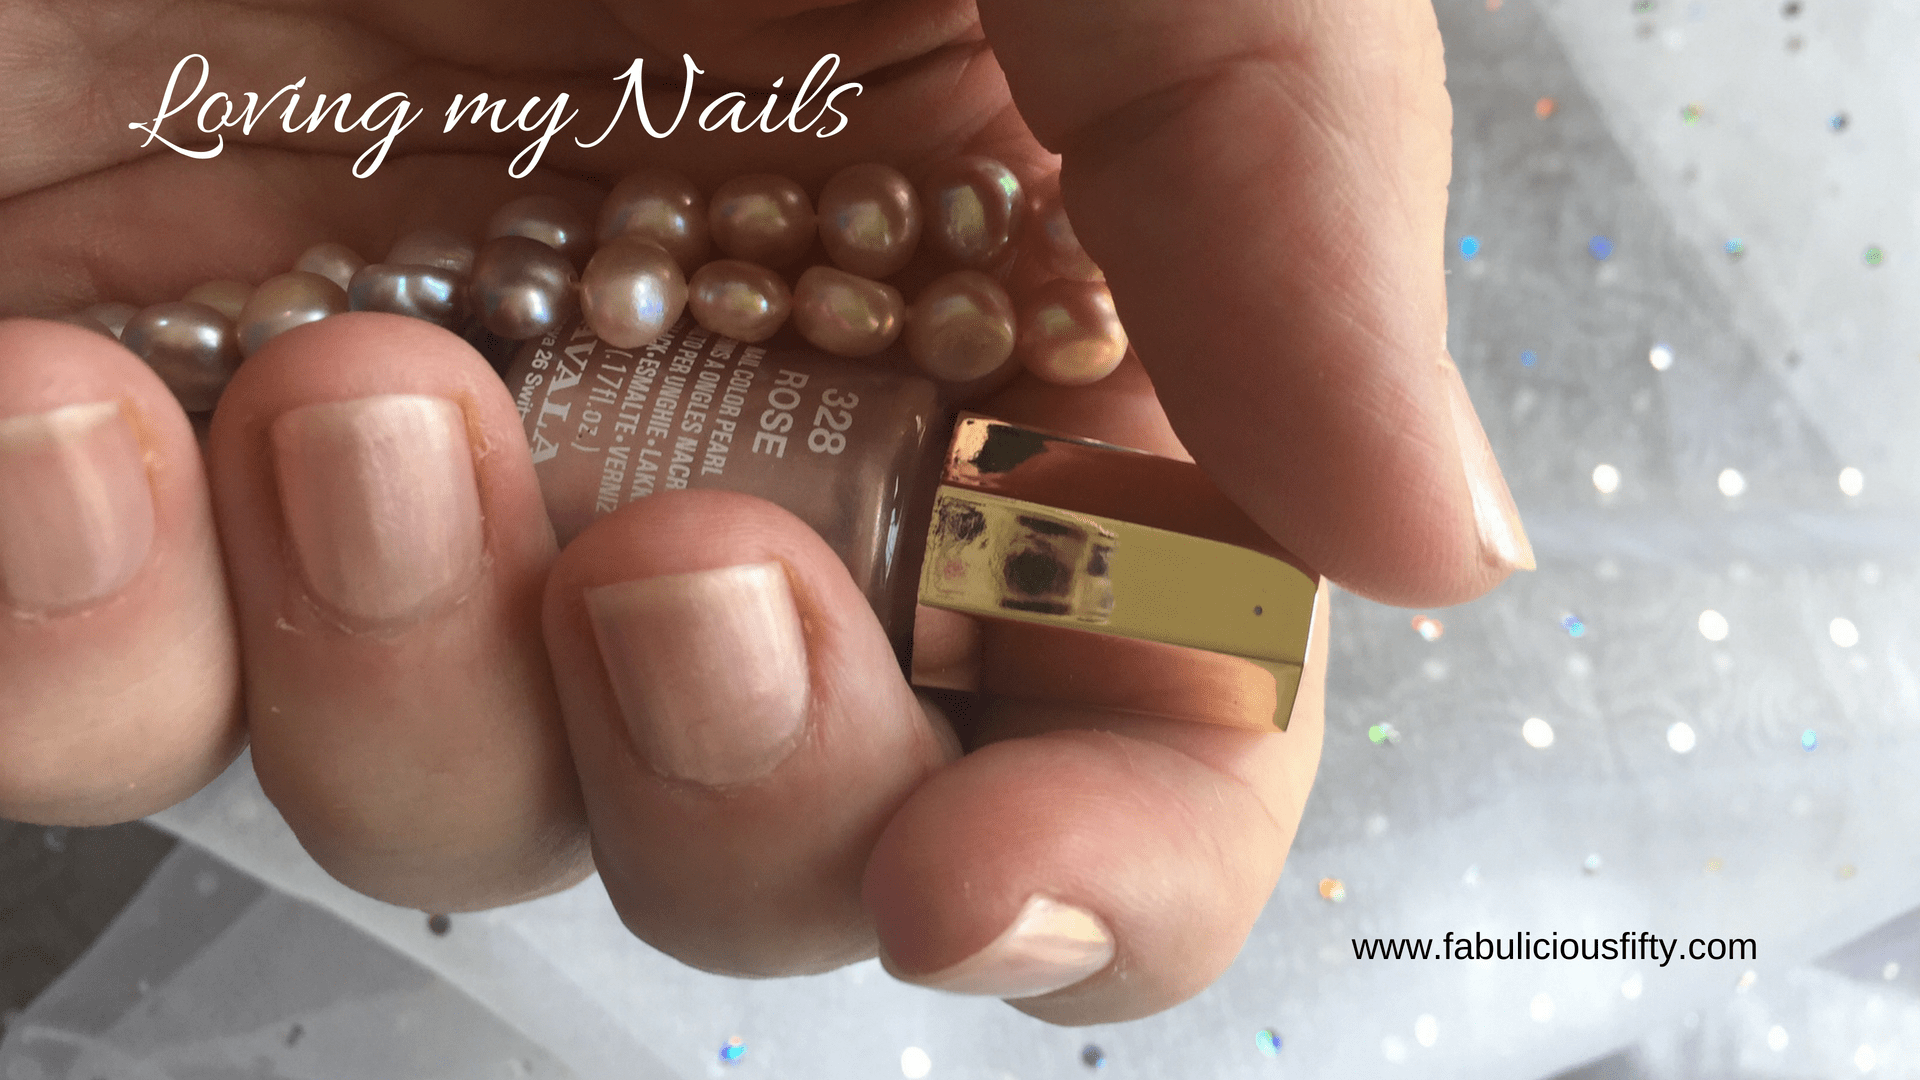 Nail care - Time to love my nails - Fabuliciousfifty